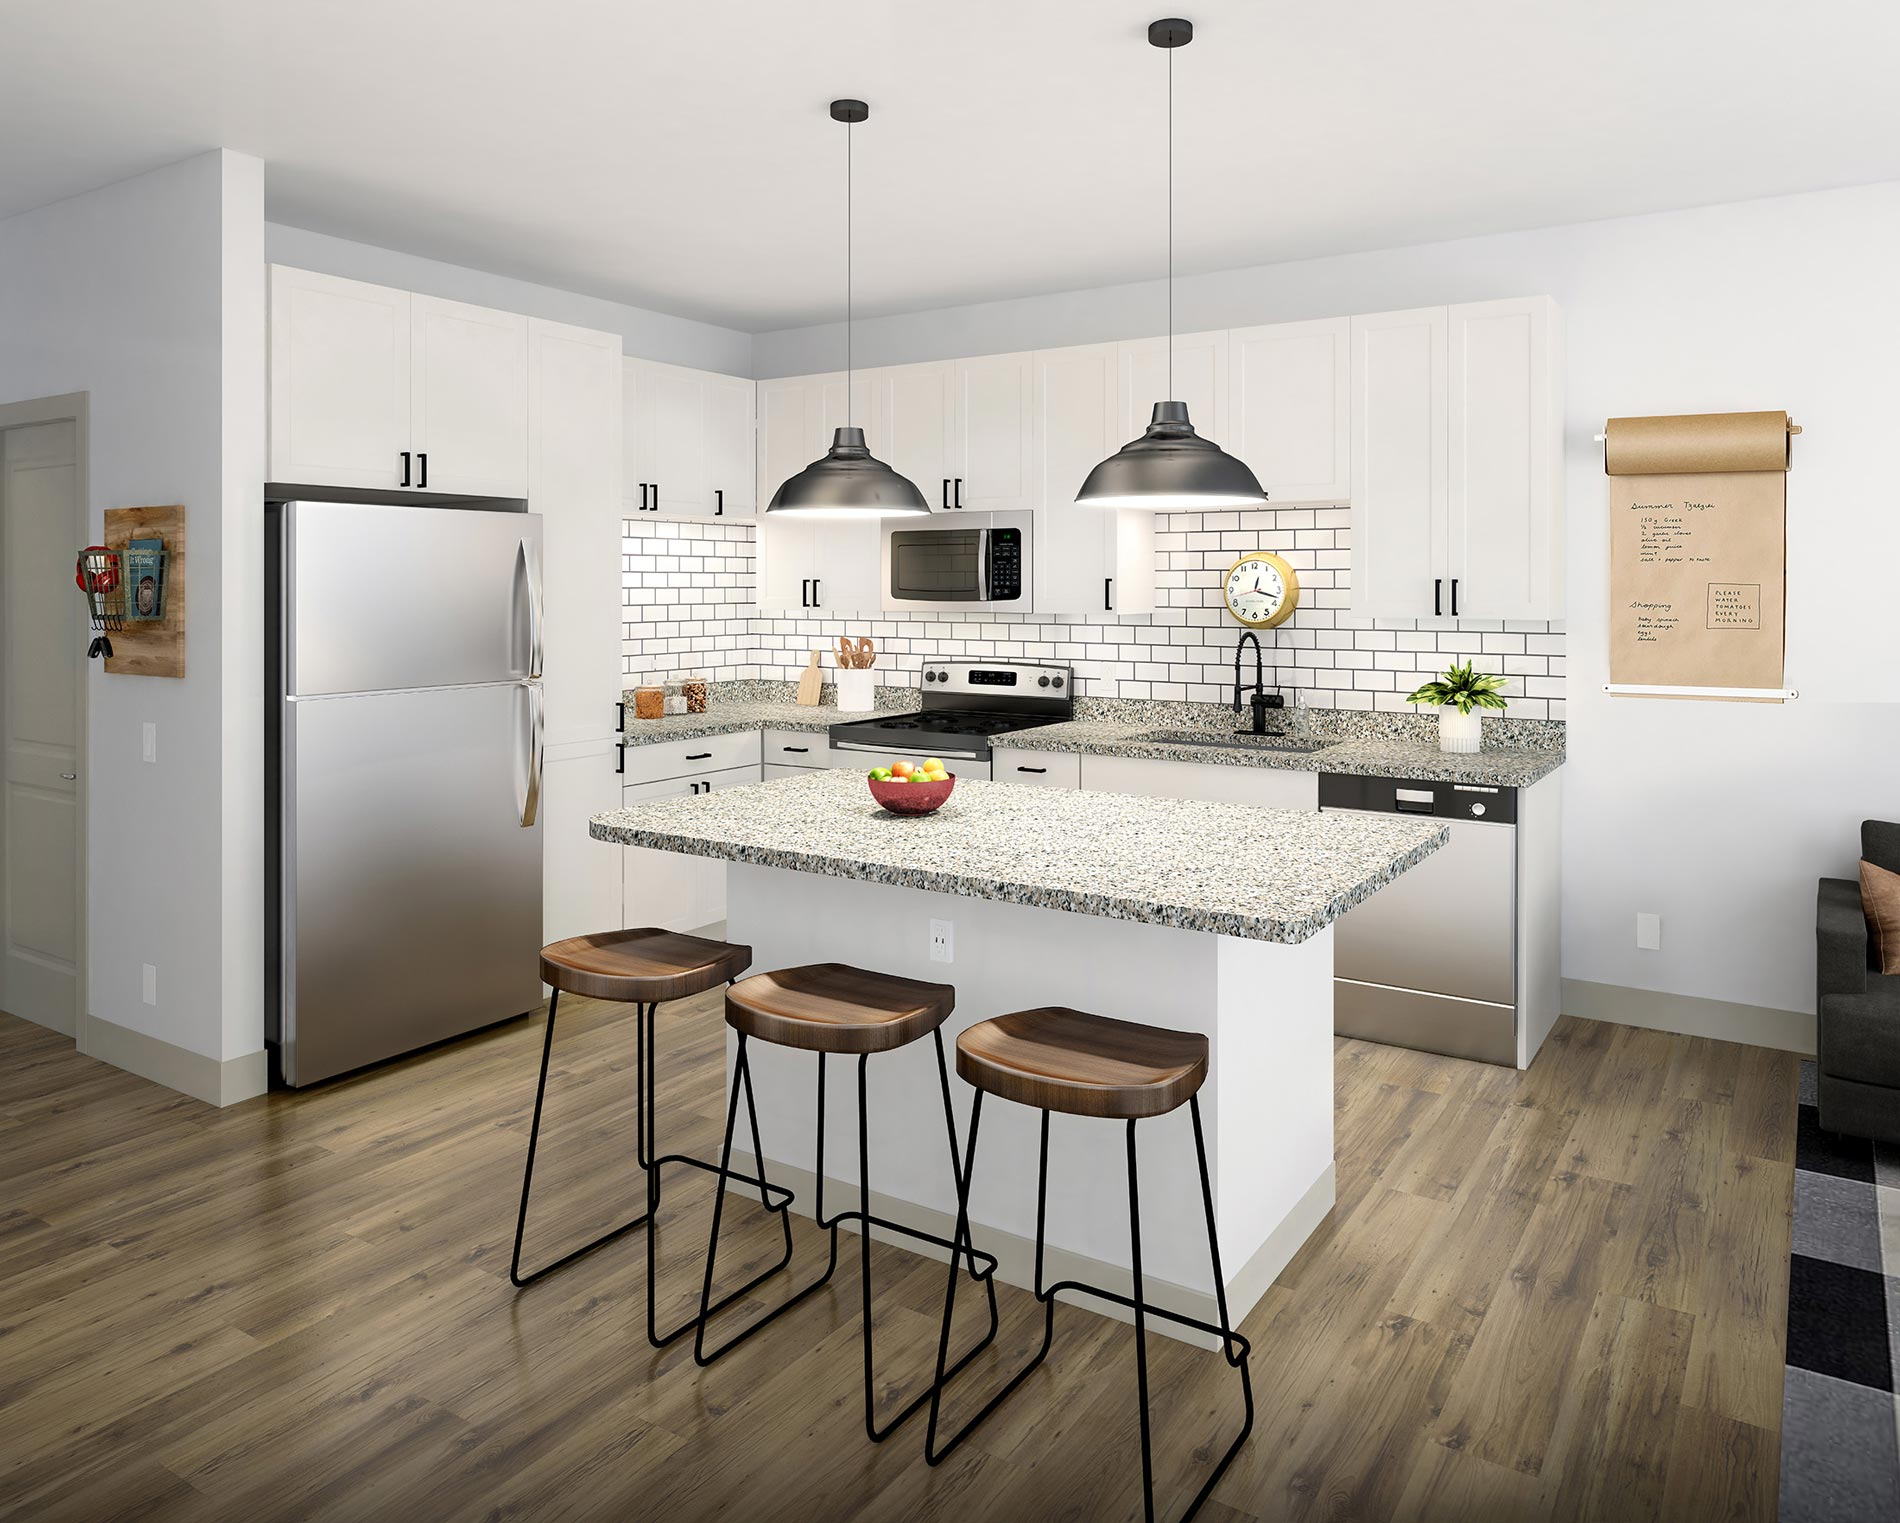 R10-UNIT-T2-KITCHEN_COLUMBIA_LR_05.22.20